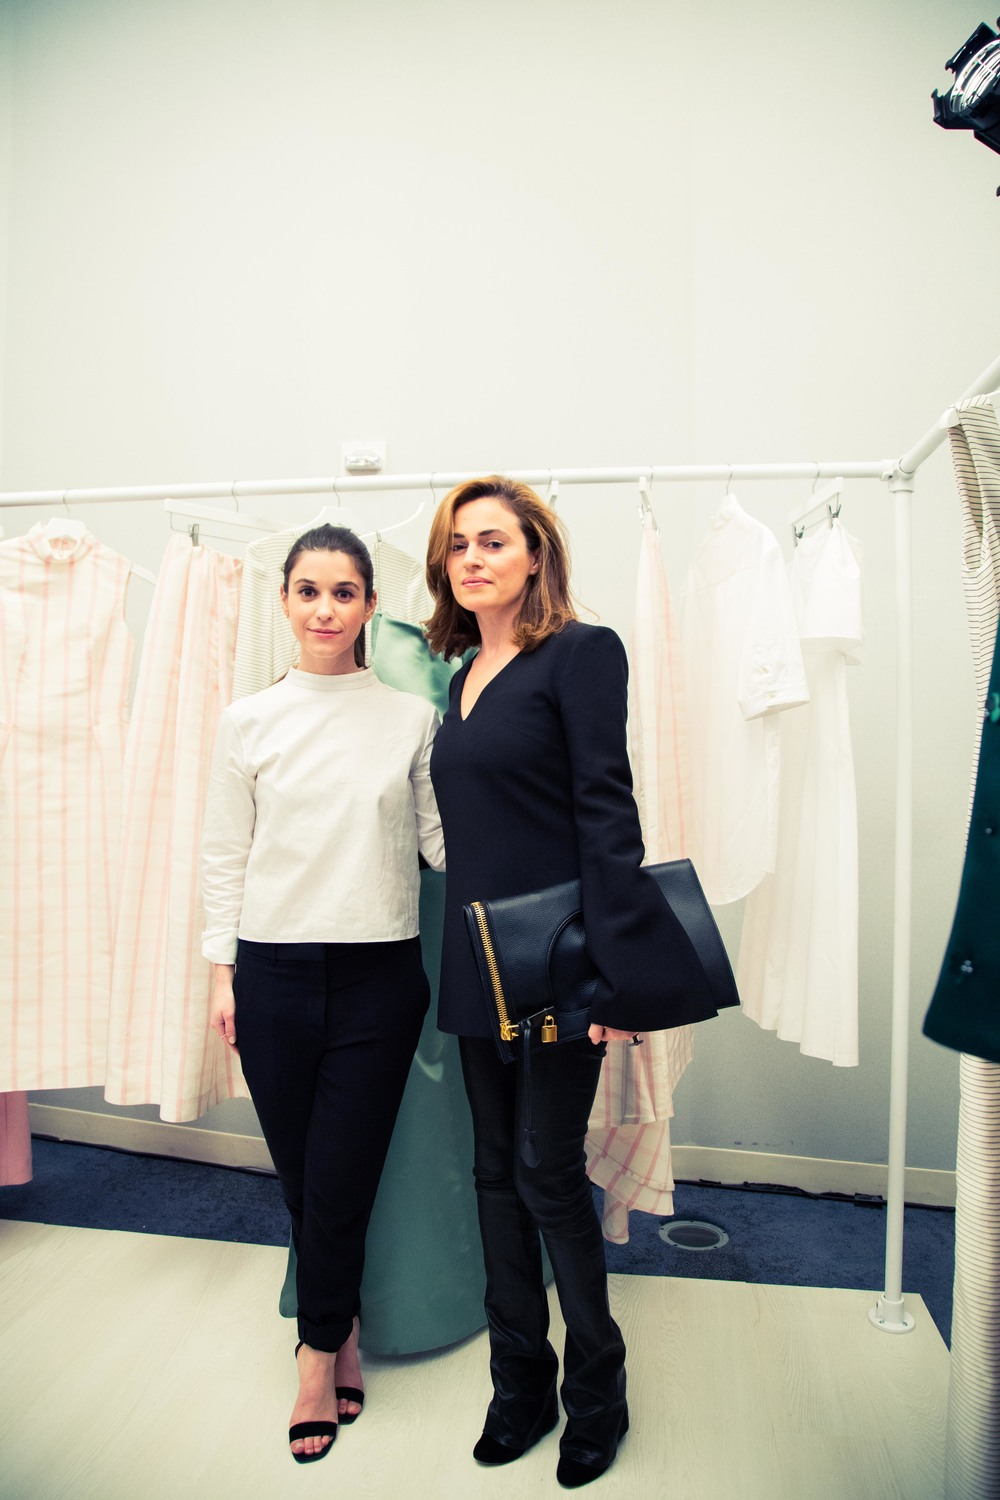 Designer Katie Ermilio and Founder JOLIEGAZETTE, Juliet Belkin. Photo by Adam Beck.